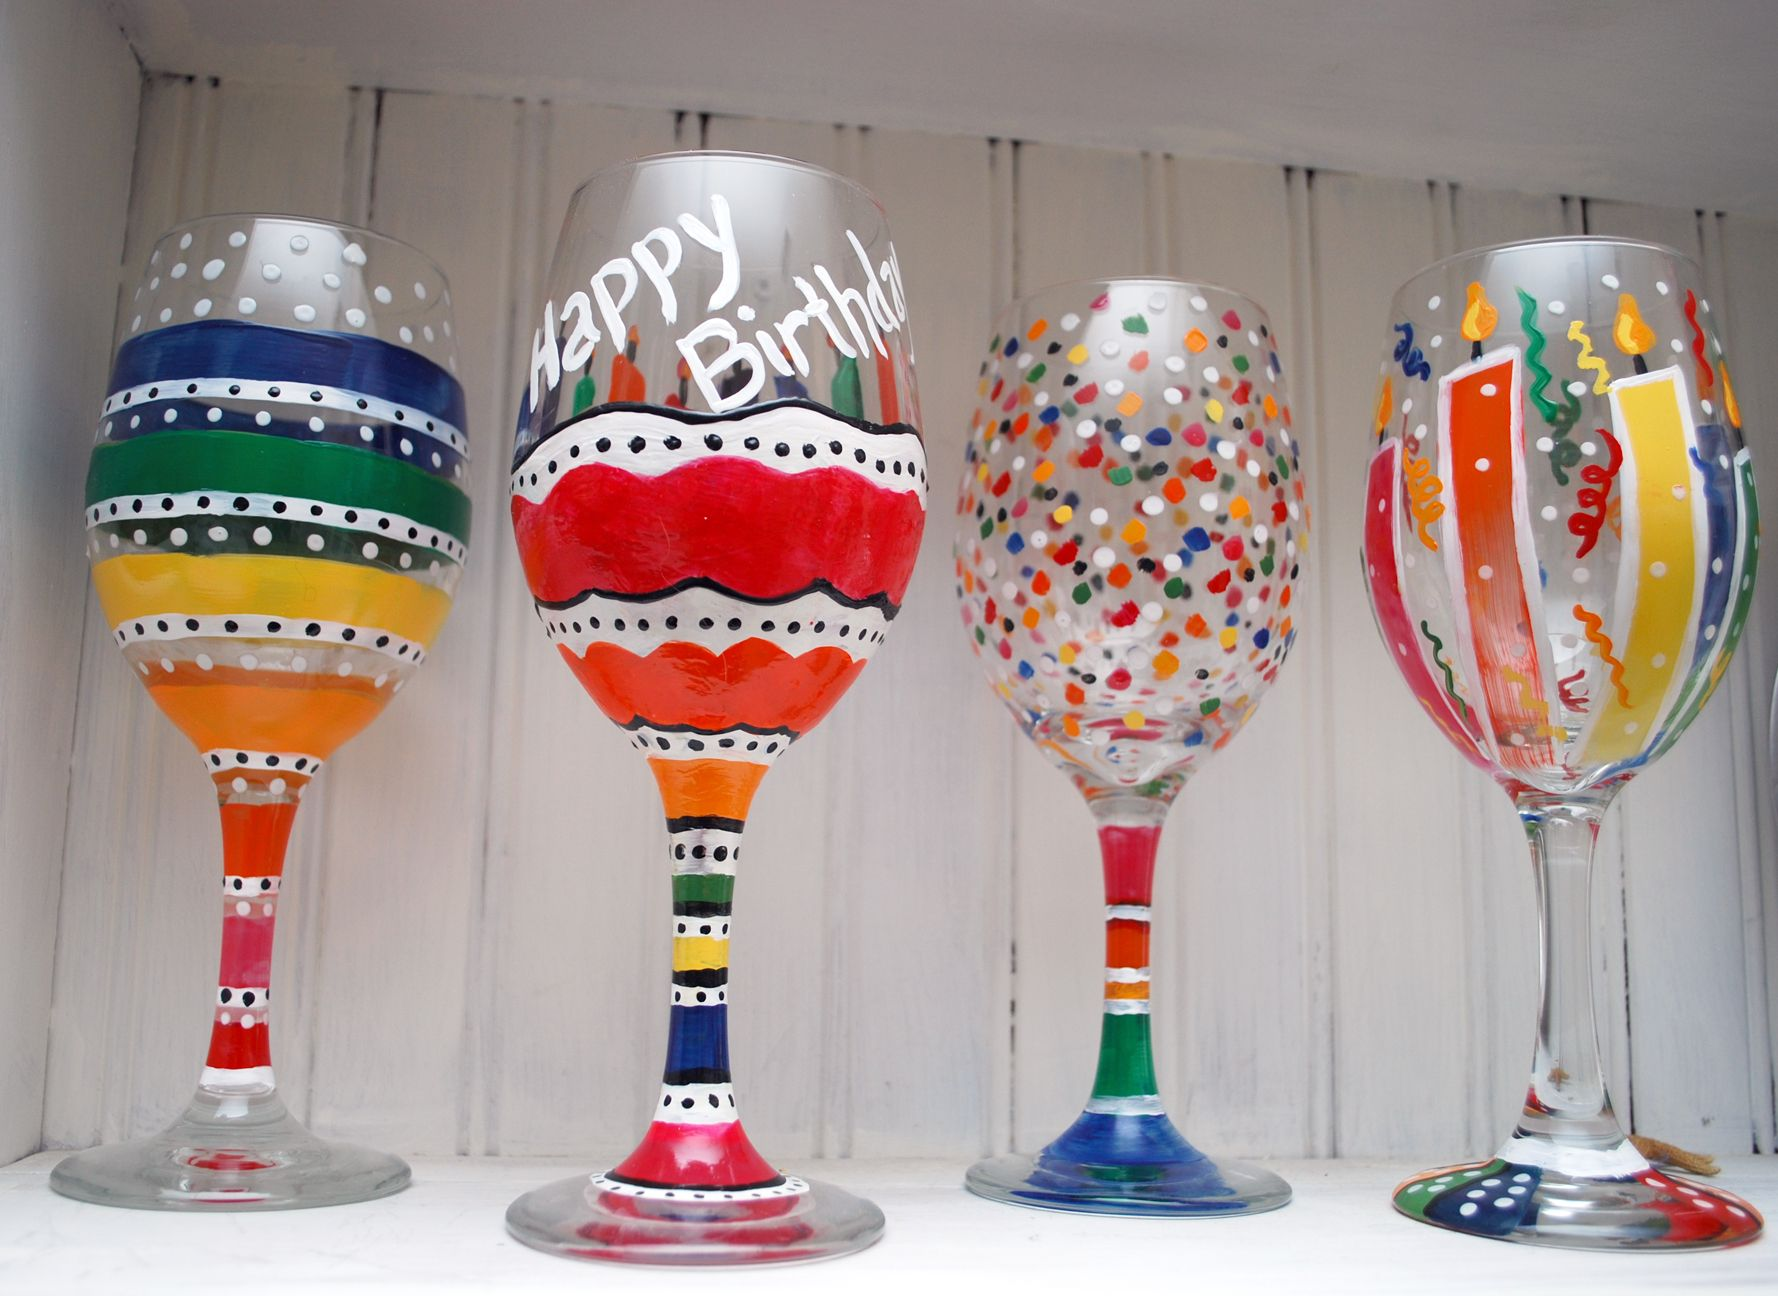 Birthday Google Image Result For Http Cassandramdesigns Com Wp Content Gallery Glass Hand Painted Wine Glasses Diy Painted Wine Glass Hand Painted Wine Glass